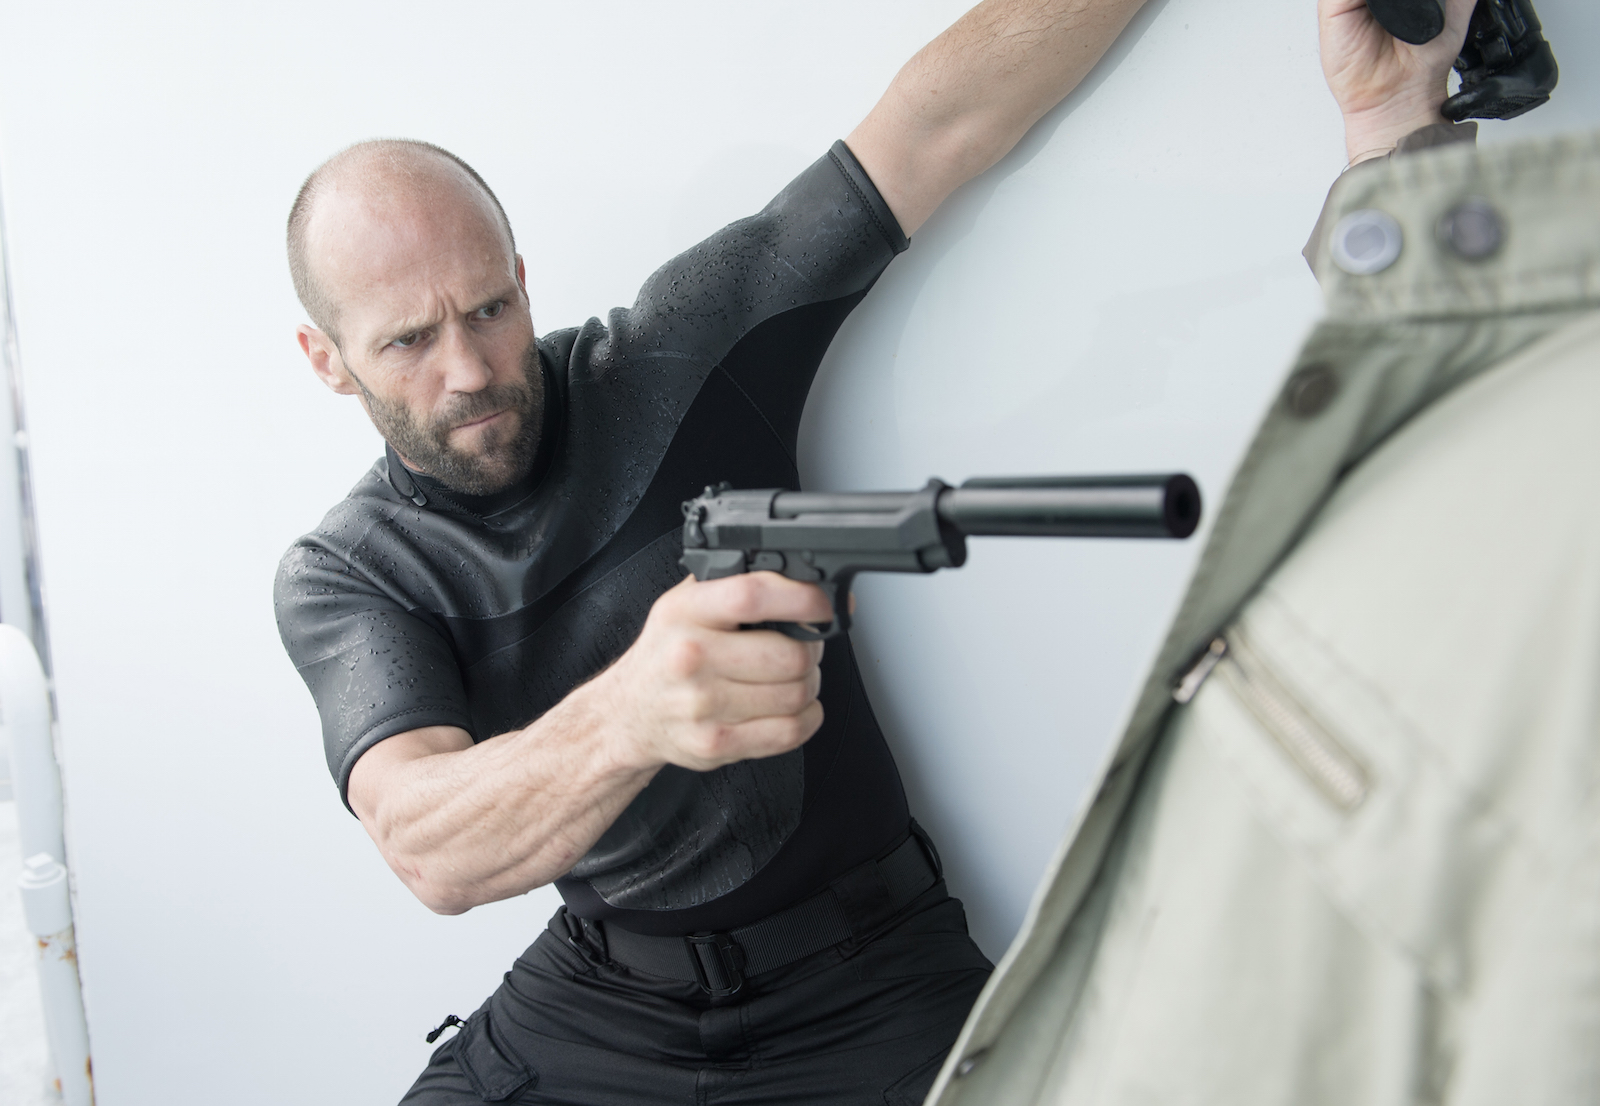 Jason Statham stars as 'Arthur Bishop' in MECHANIC: RESURRECTION